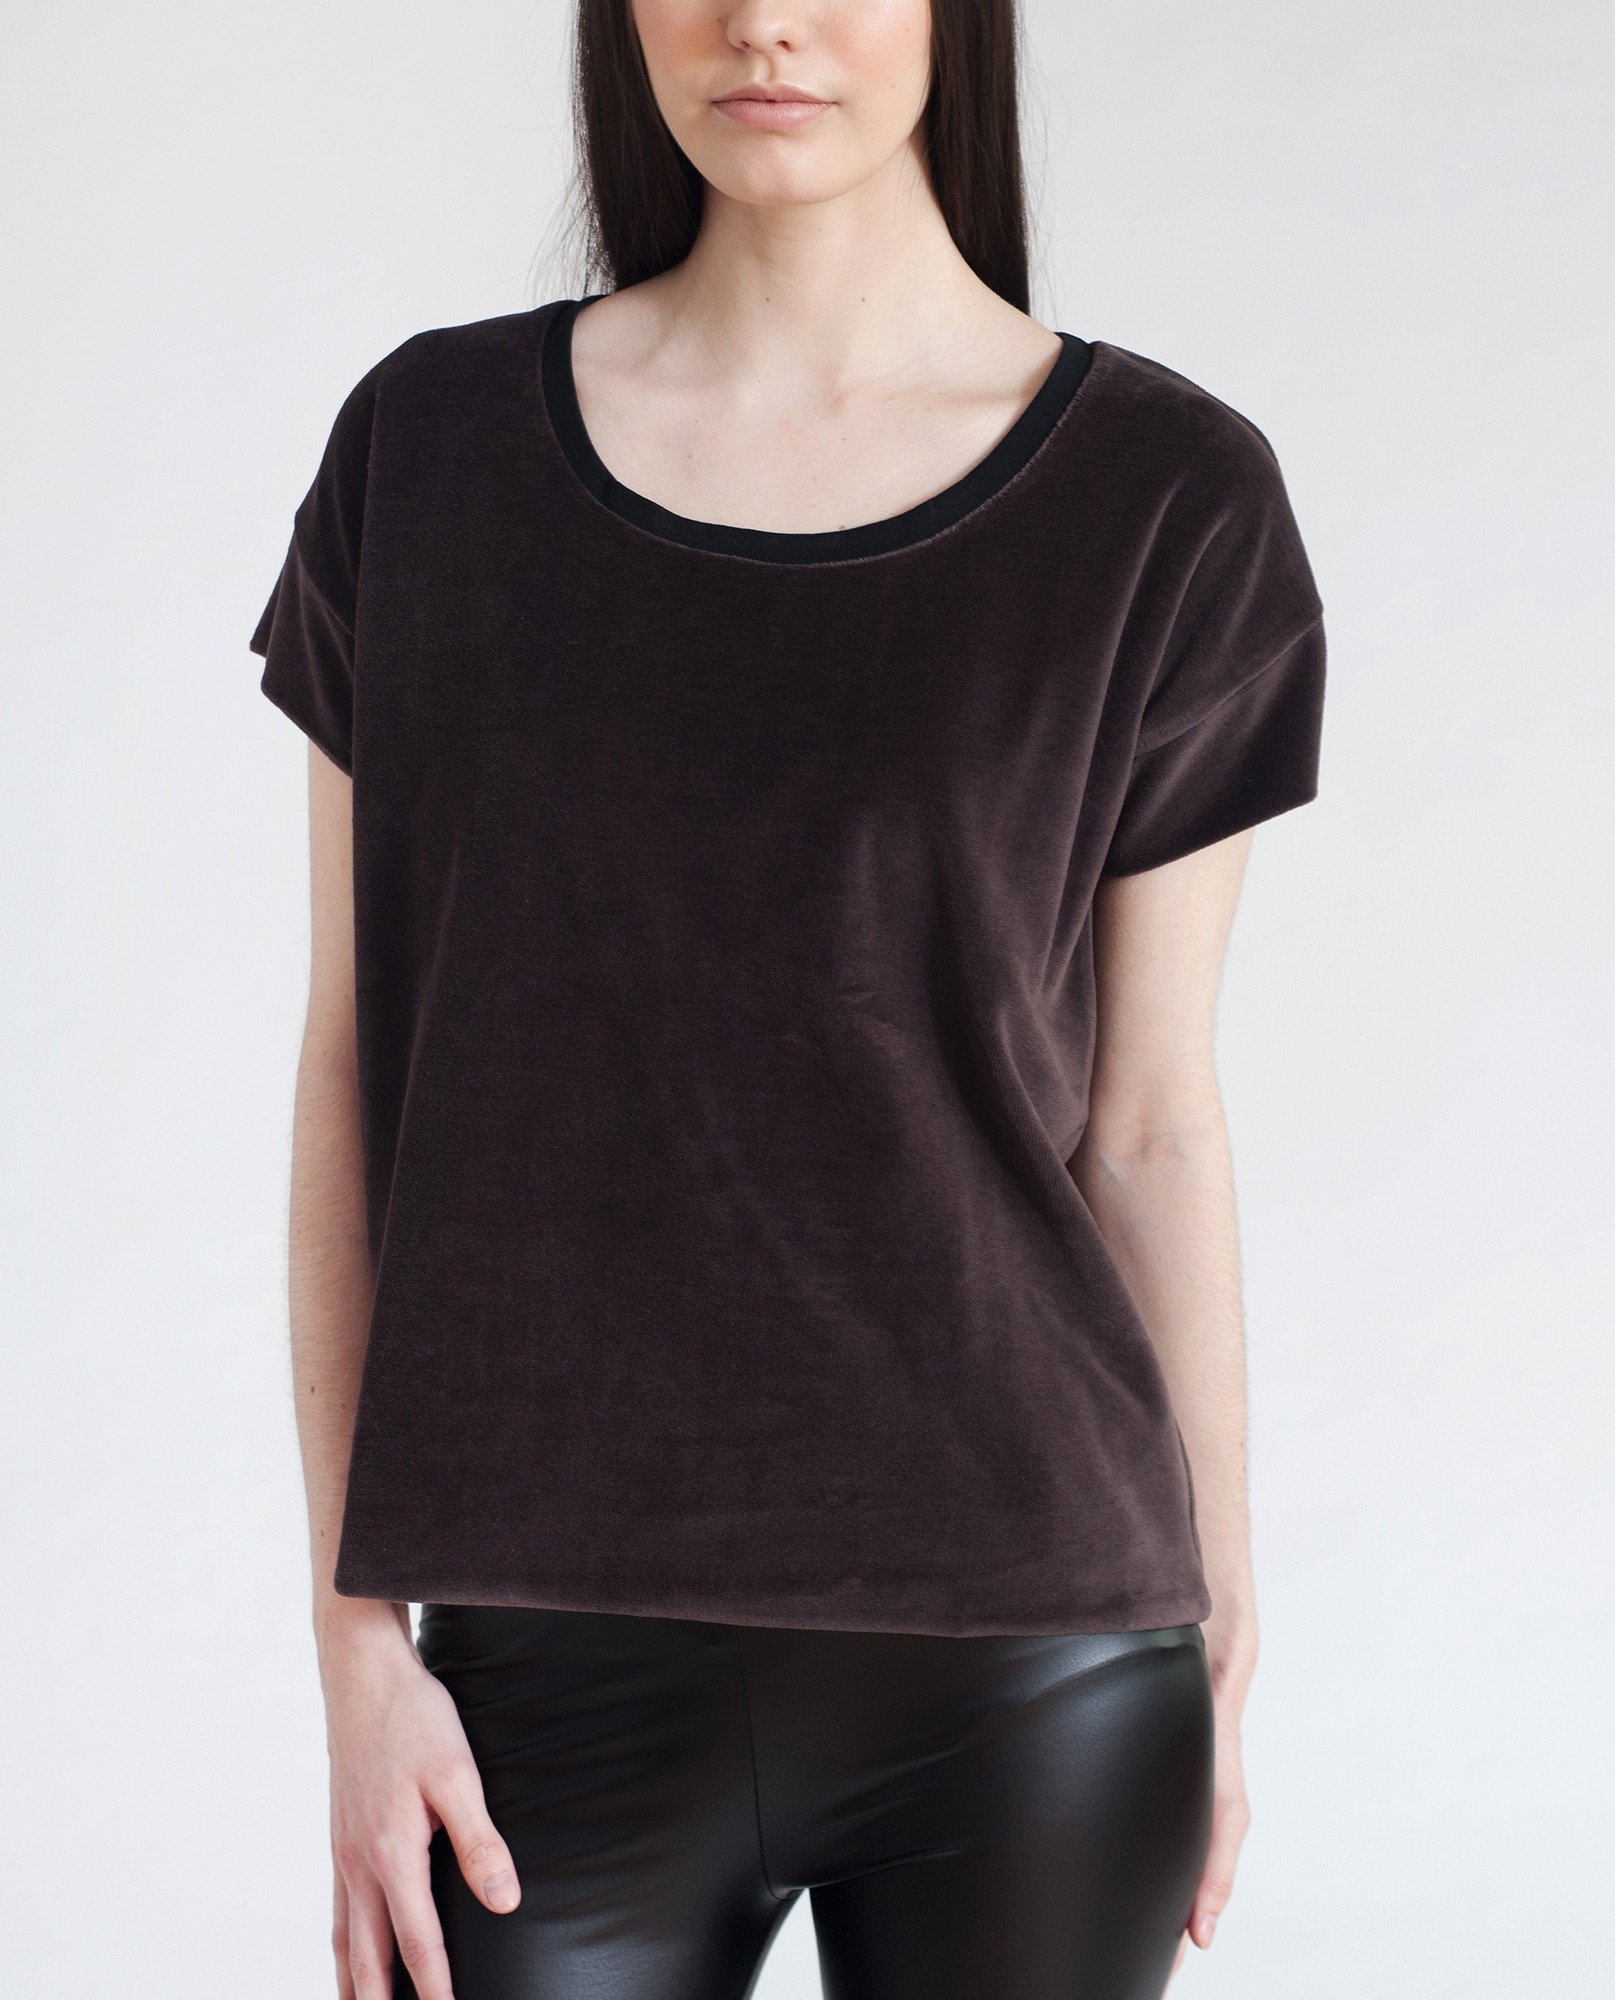 JAQUELINE Cotton Velvet Top from Beaumont Organic